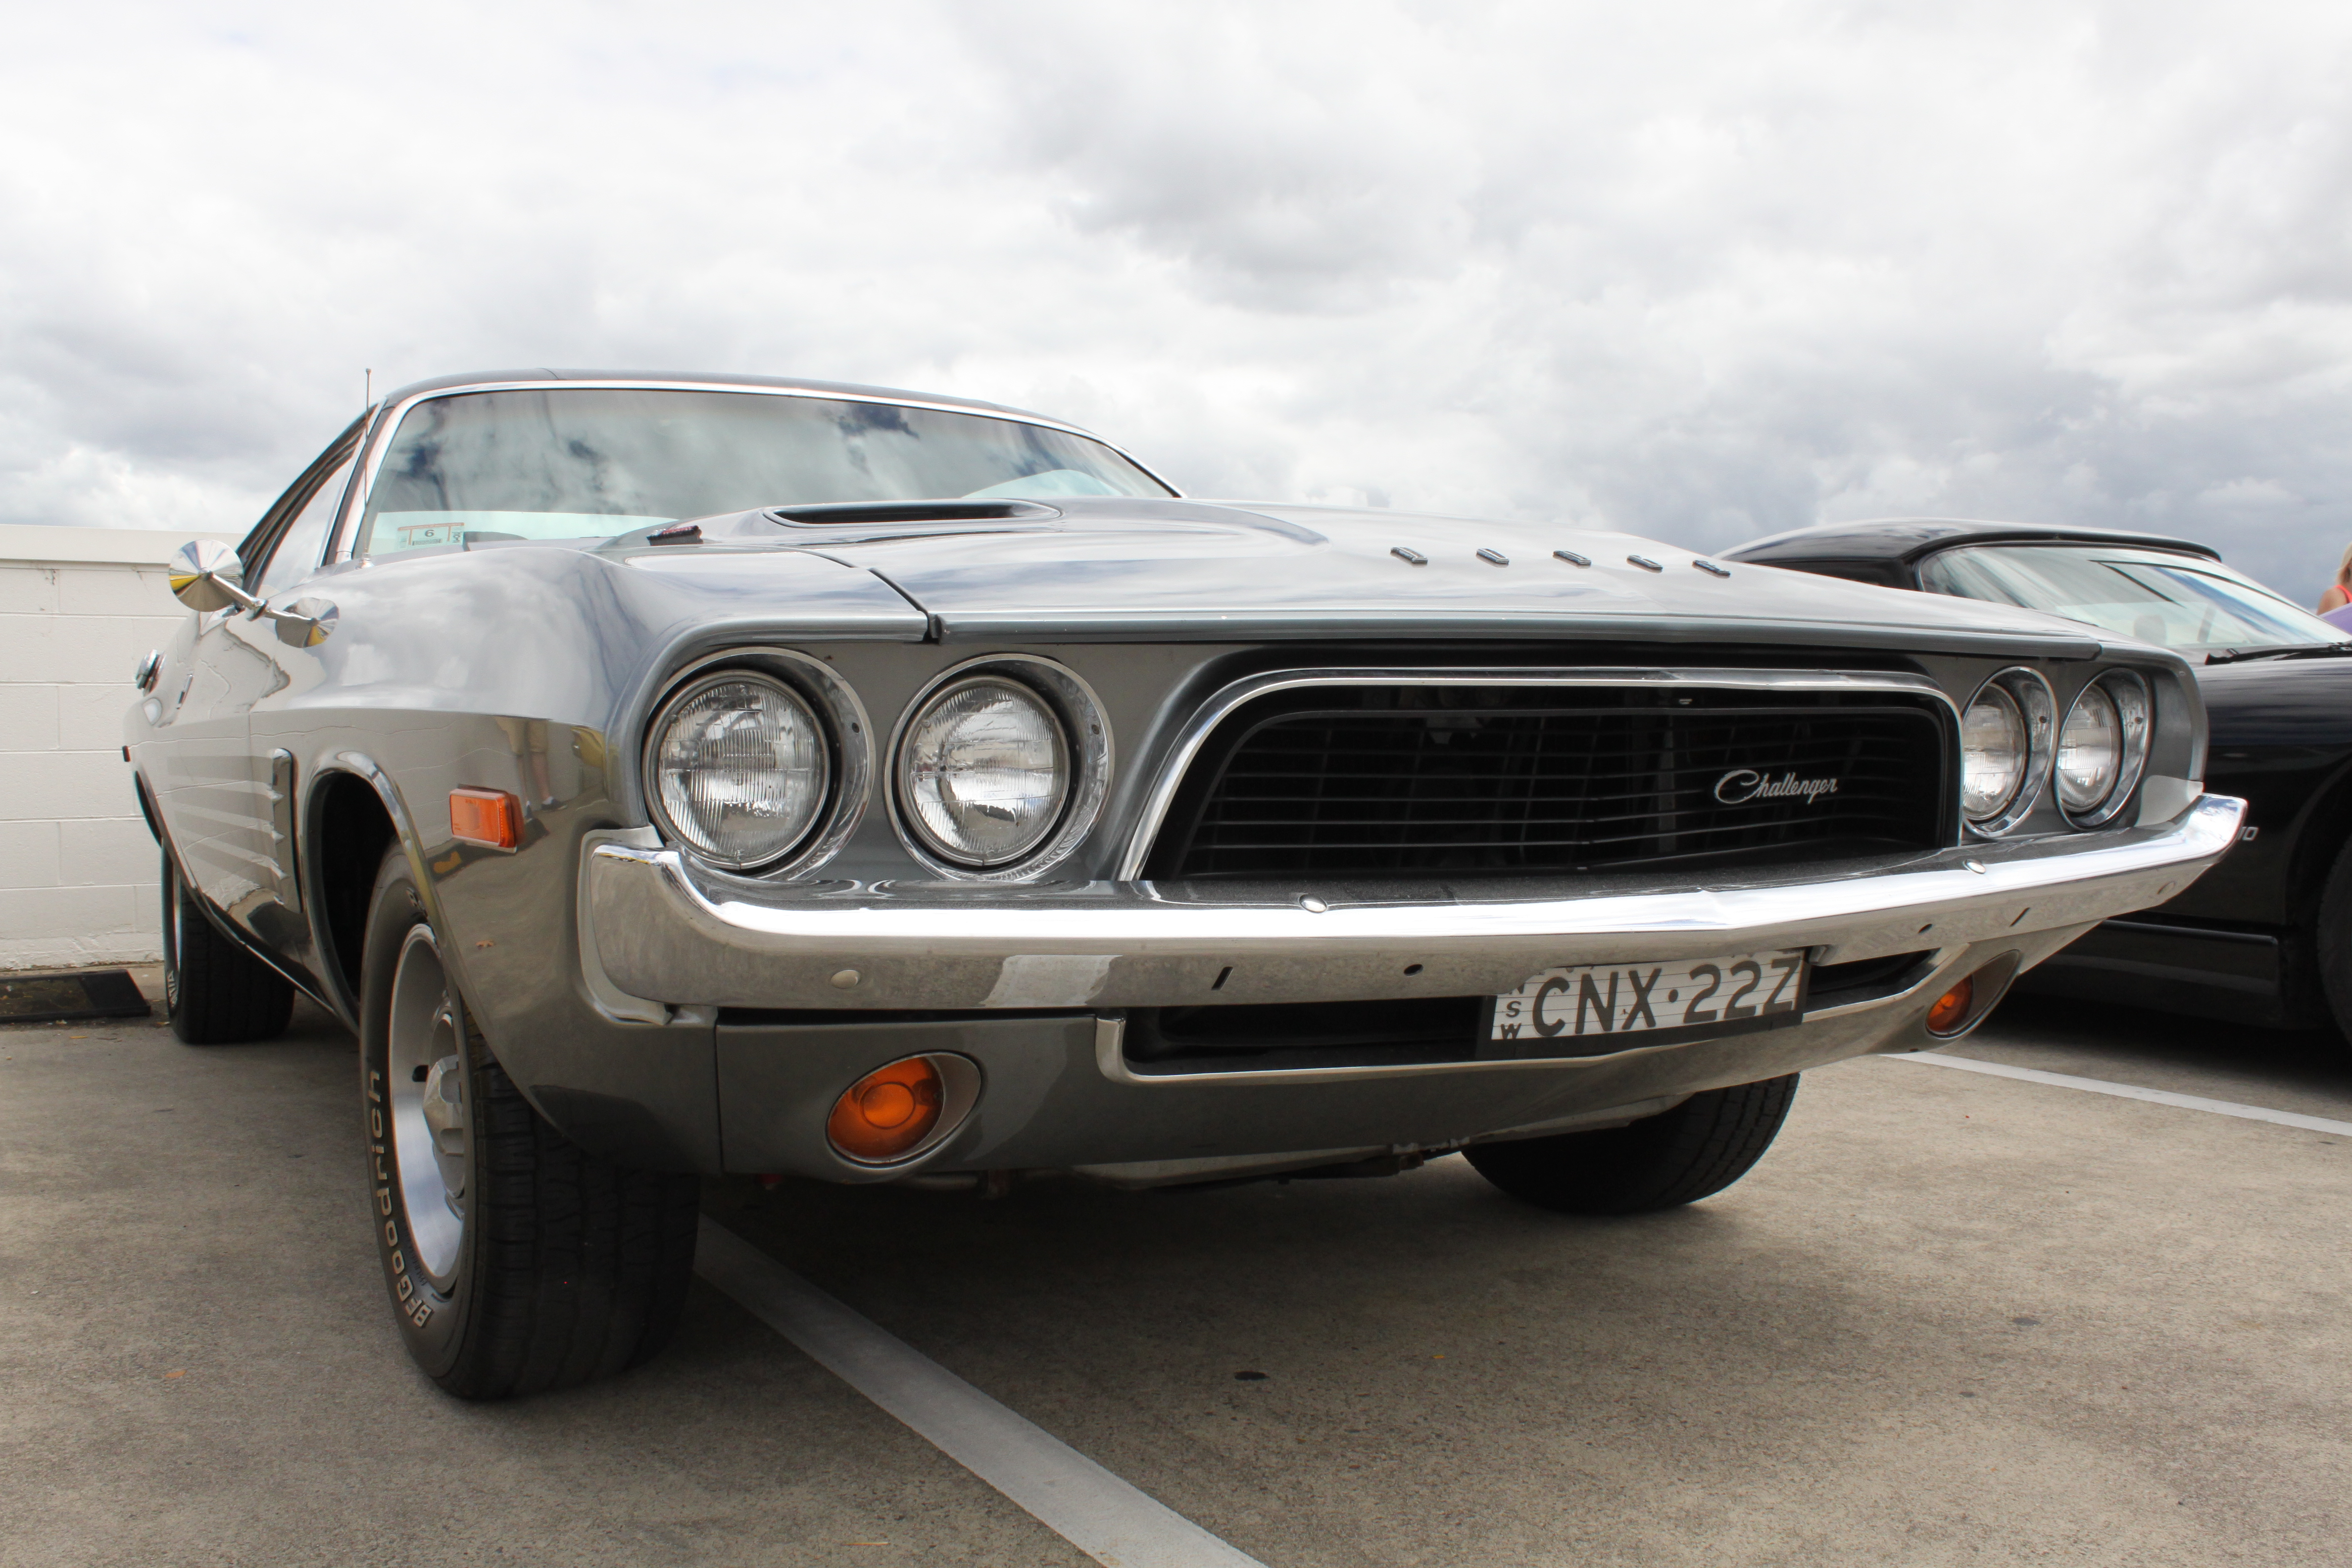 1970 dodge challenger rt classic cars online us. Cars Review. Best American Auto & Cars Review